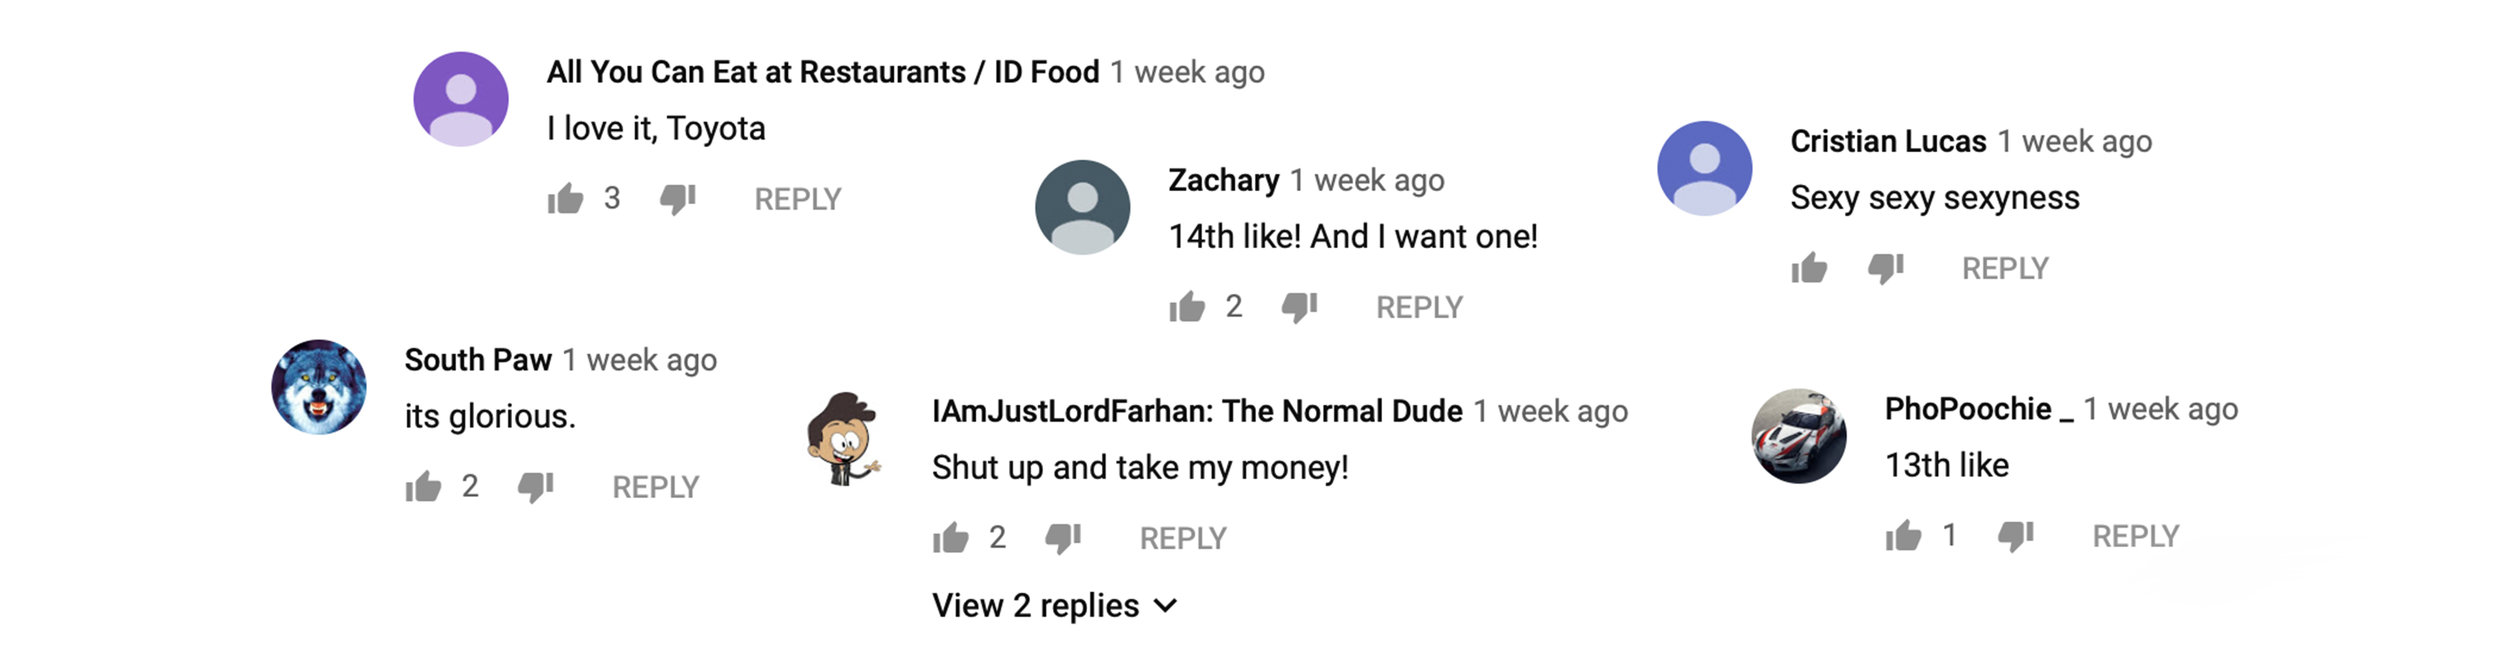 comments.jpg